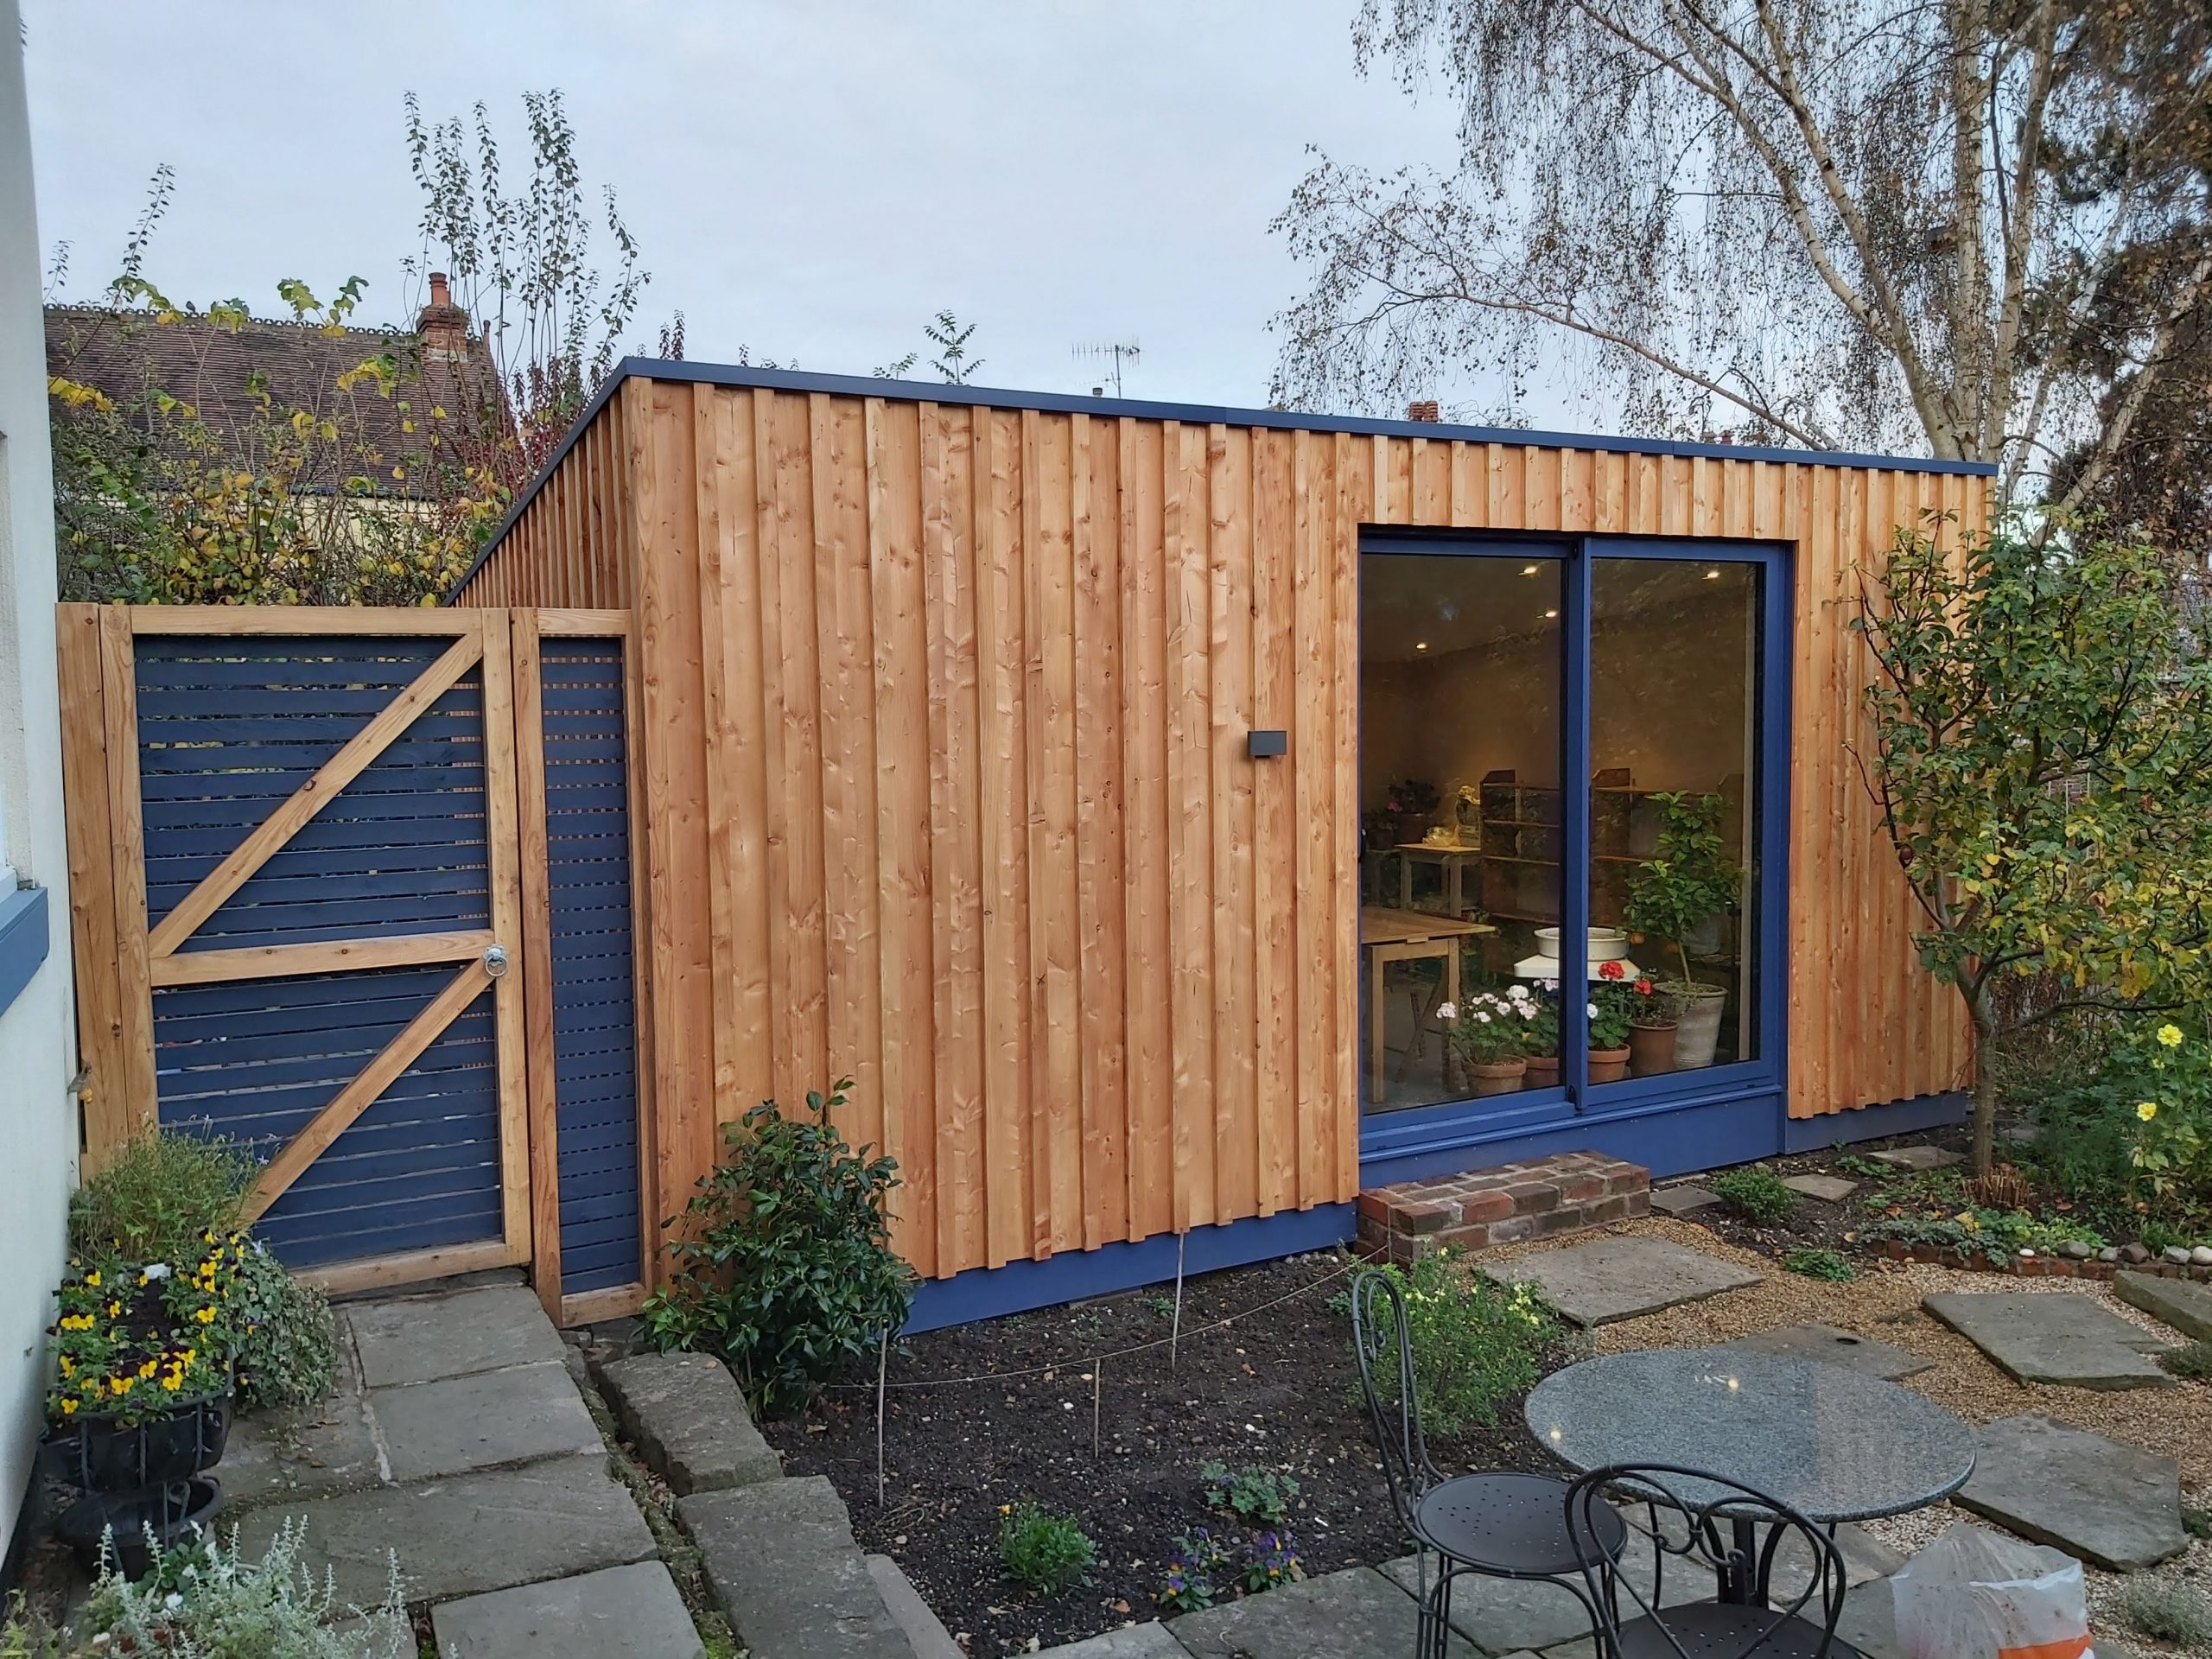 Garden Studio Clad in Larch